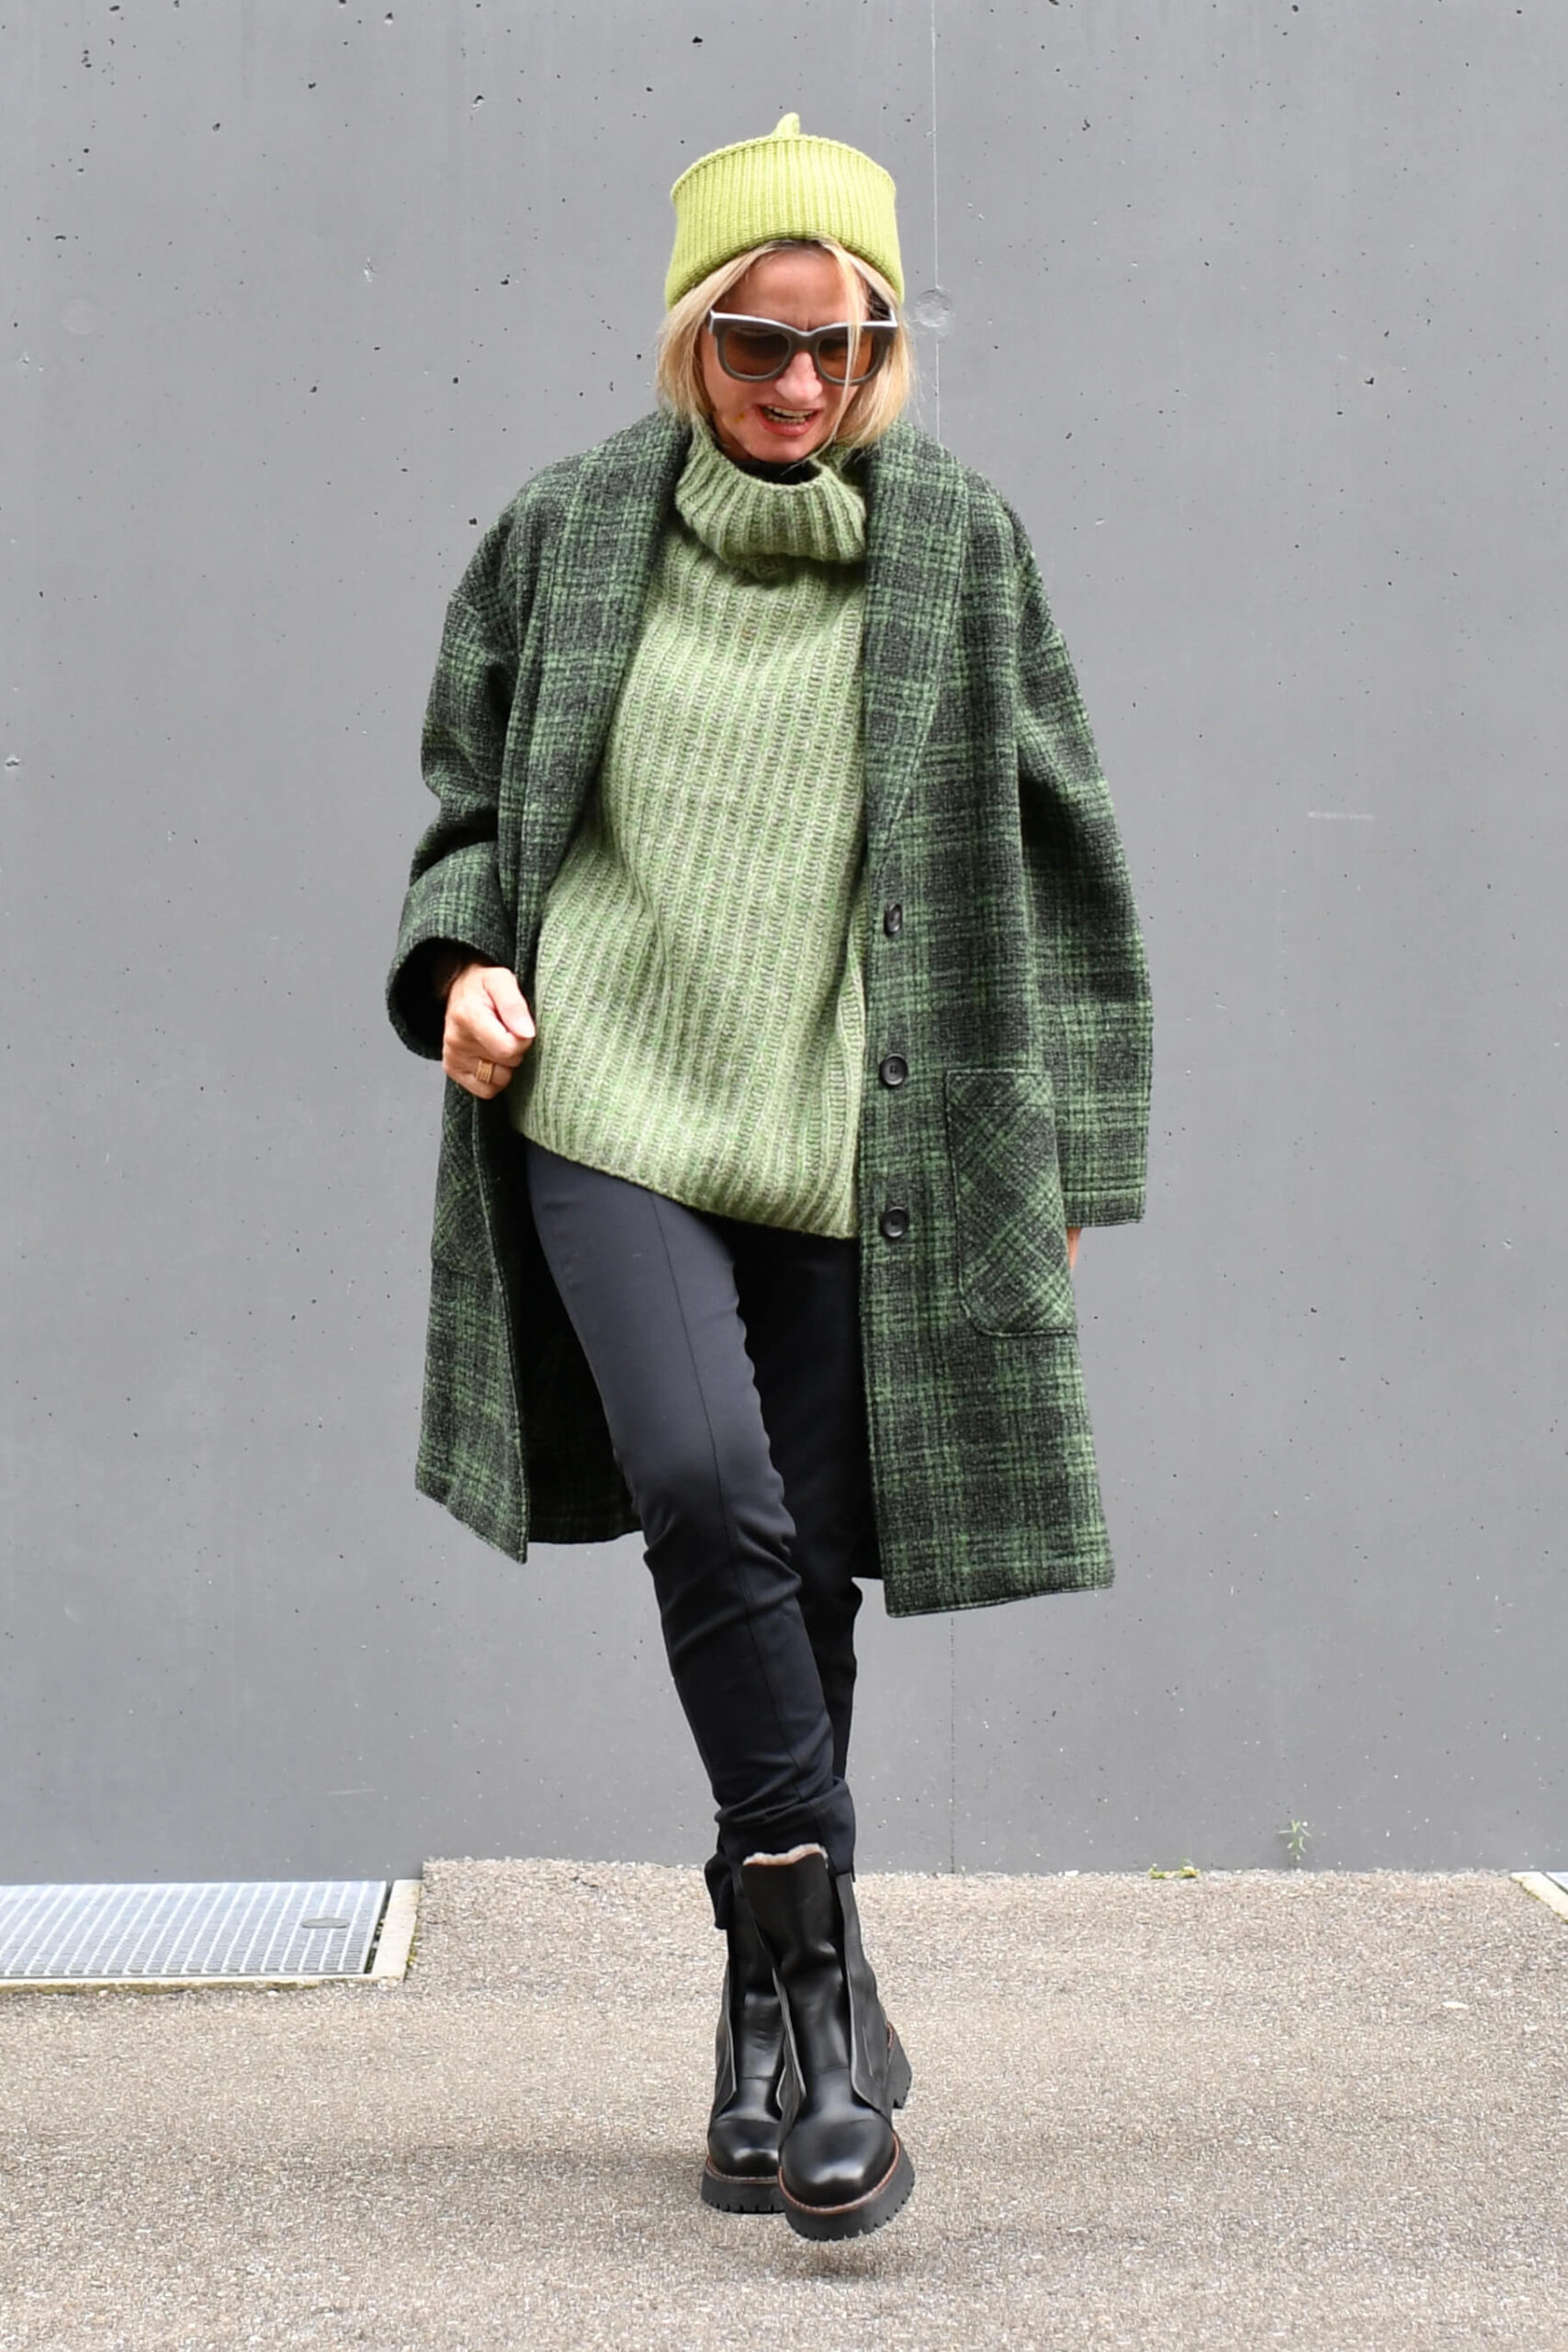 The New Tartan for this Coming Fall/Winter